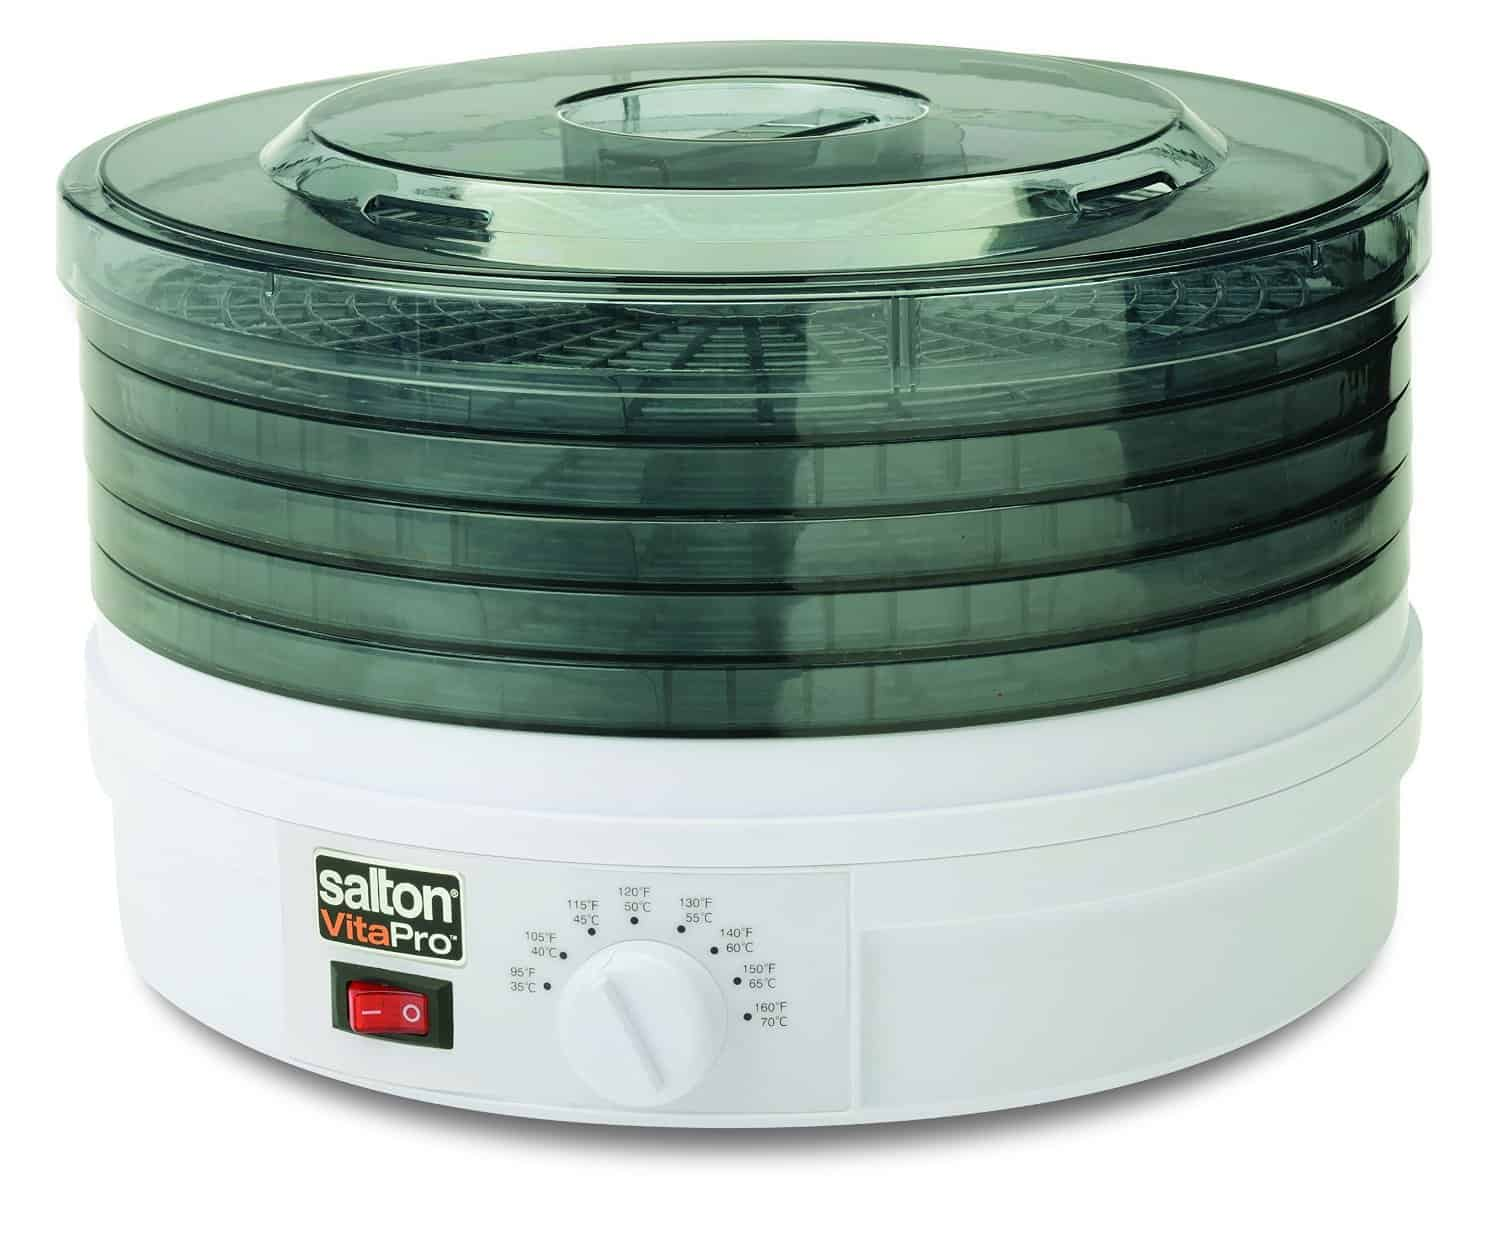 Canadian Online Home Decor Stores Salton Collapsible Dehydrator 46 Off